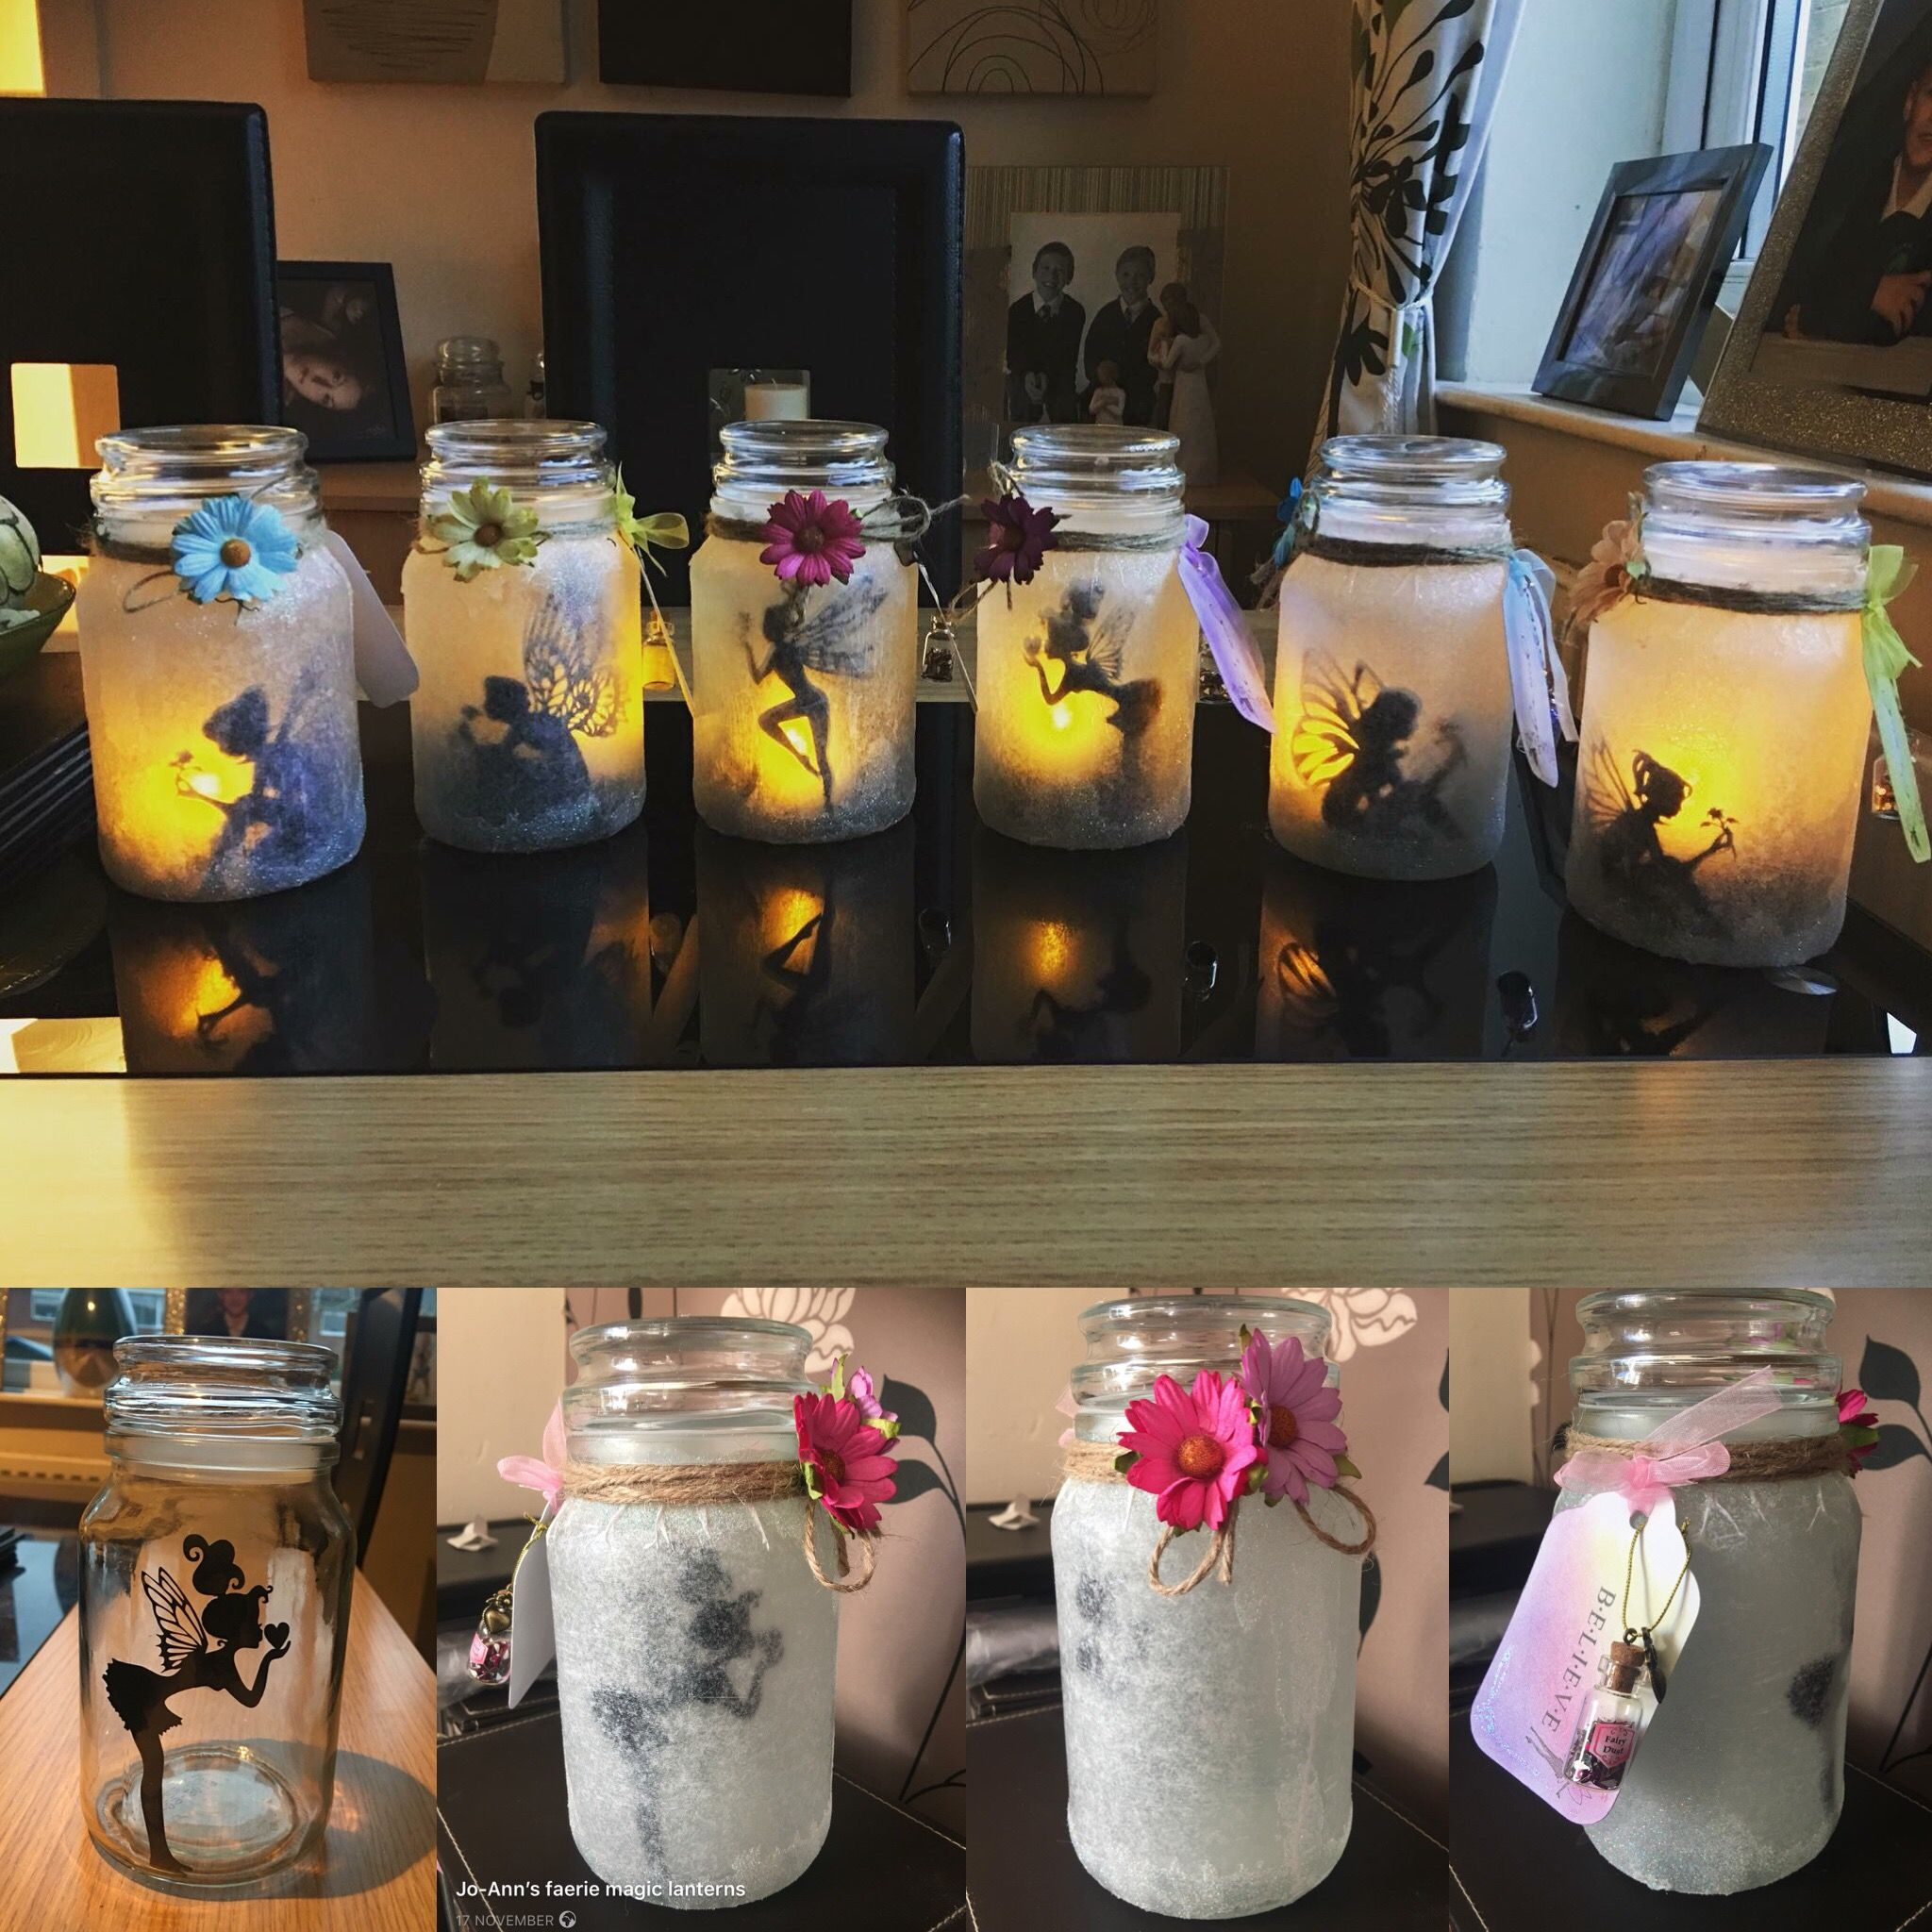 I Made These Fairy Jars From Empty Douwe Egbert Coffee Jars All You Need Is Glitter Fairy Silhouettes Brought Mine O Fairy Jars Diy Bottle Crafts Coffee Jars